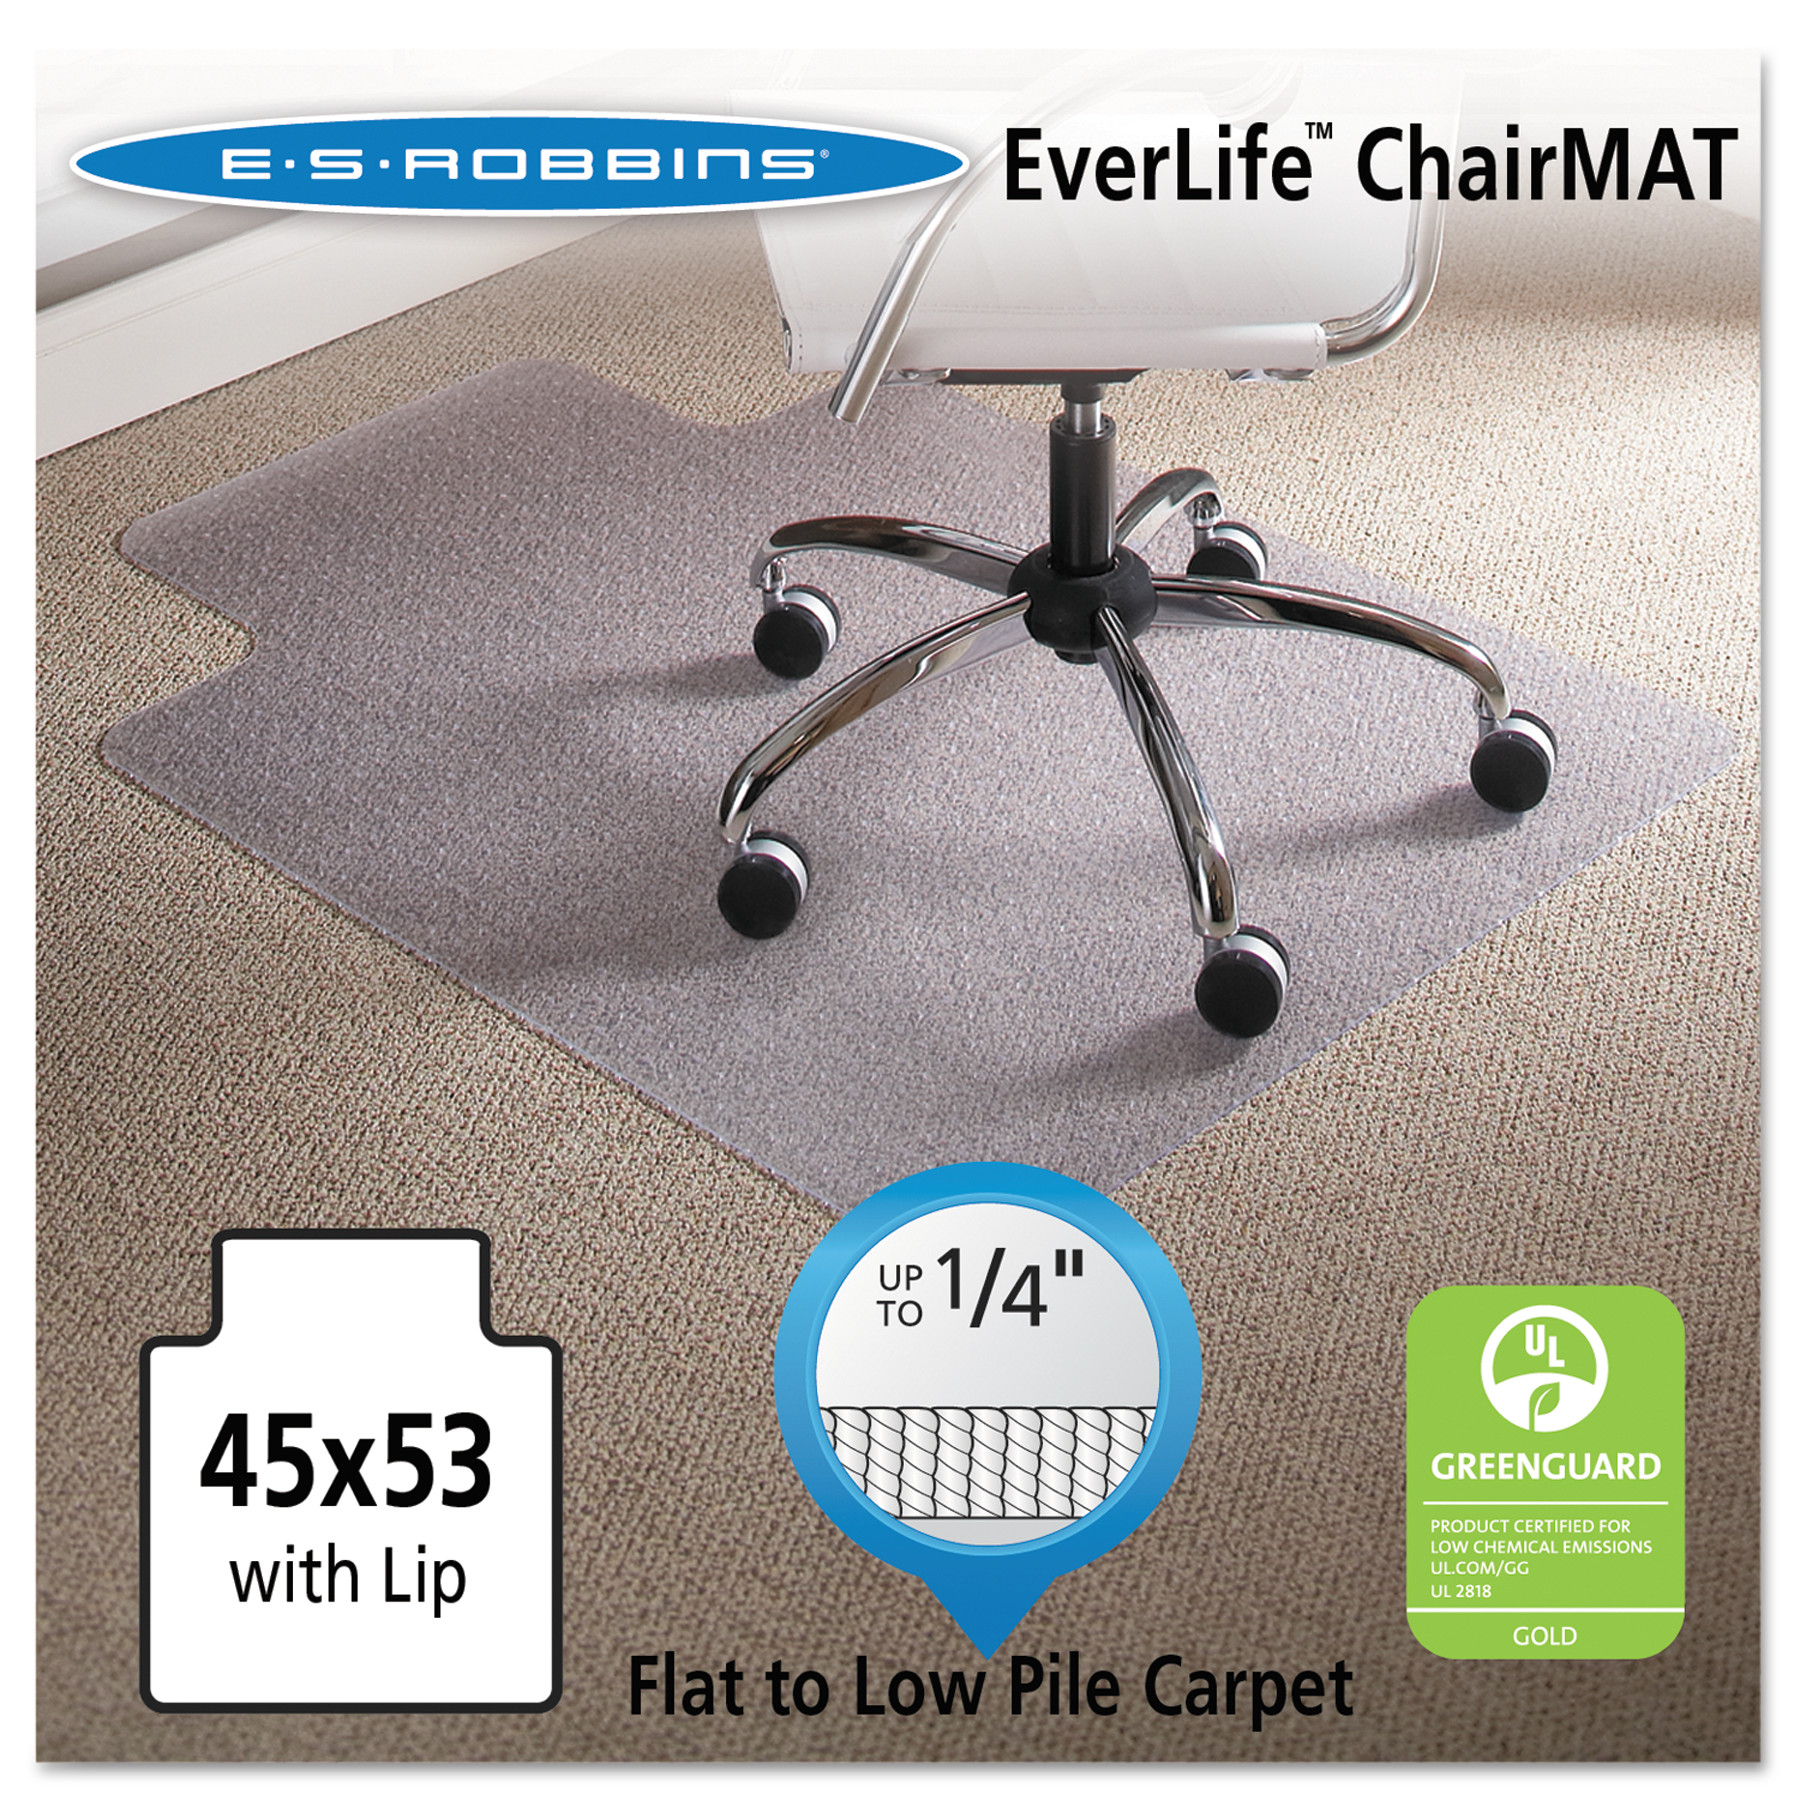 ES Robbins AnchorBar 45 x 53 Chair Mat for Low Pile Carpet, Rectangular